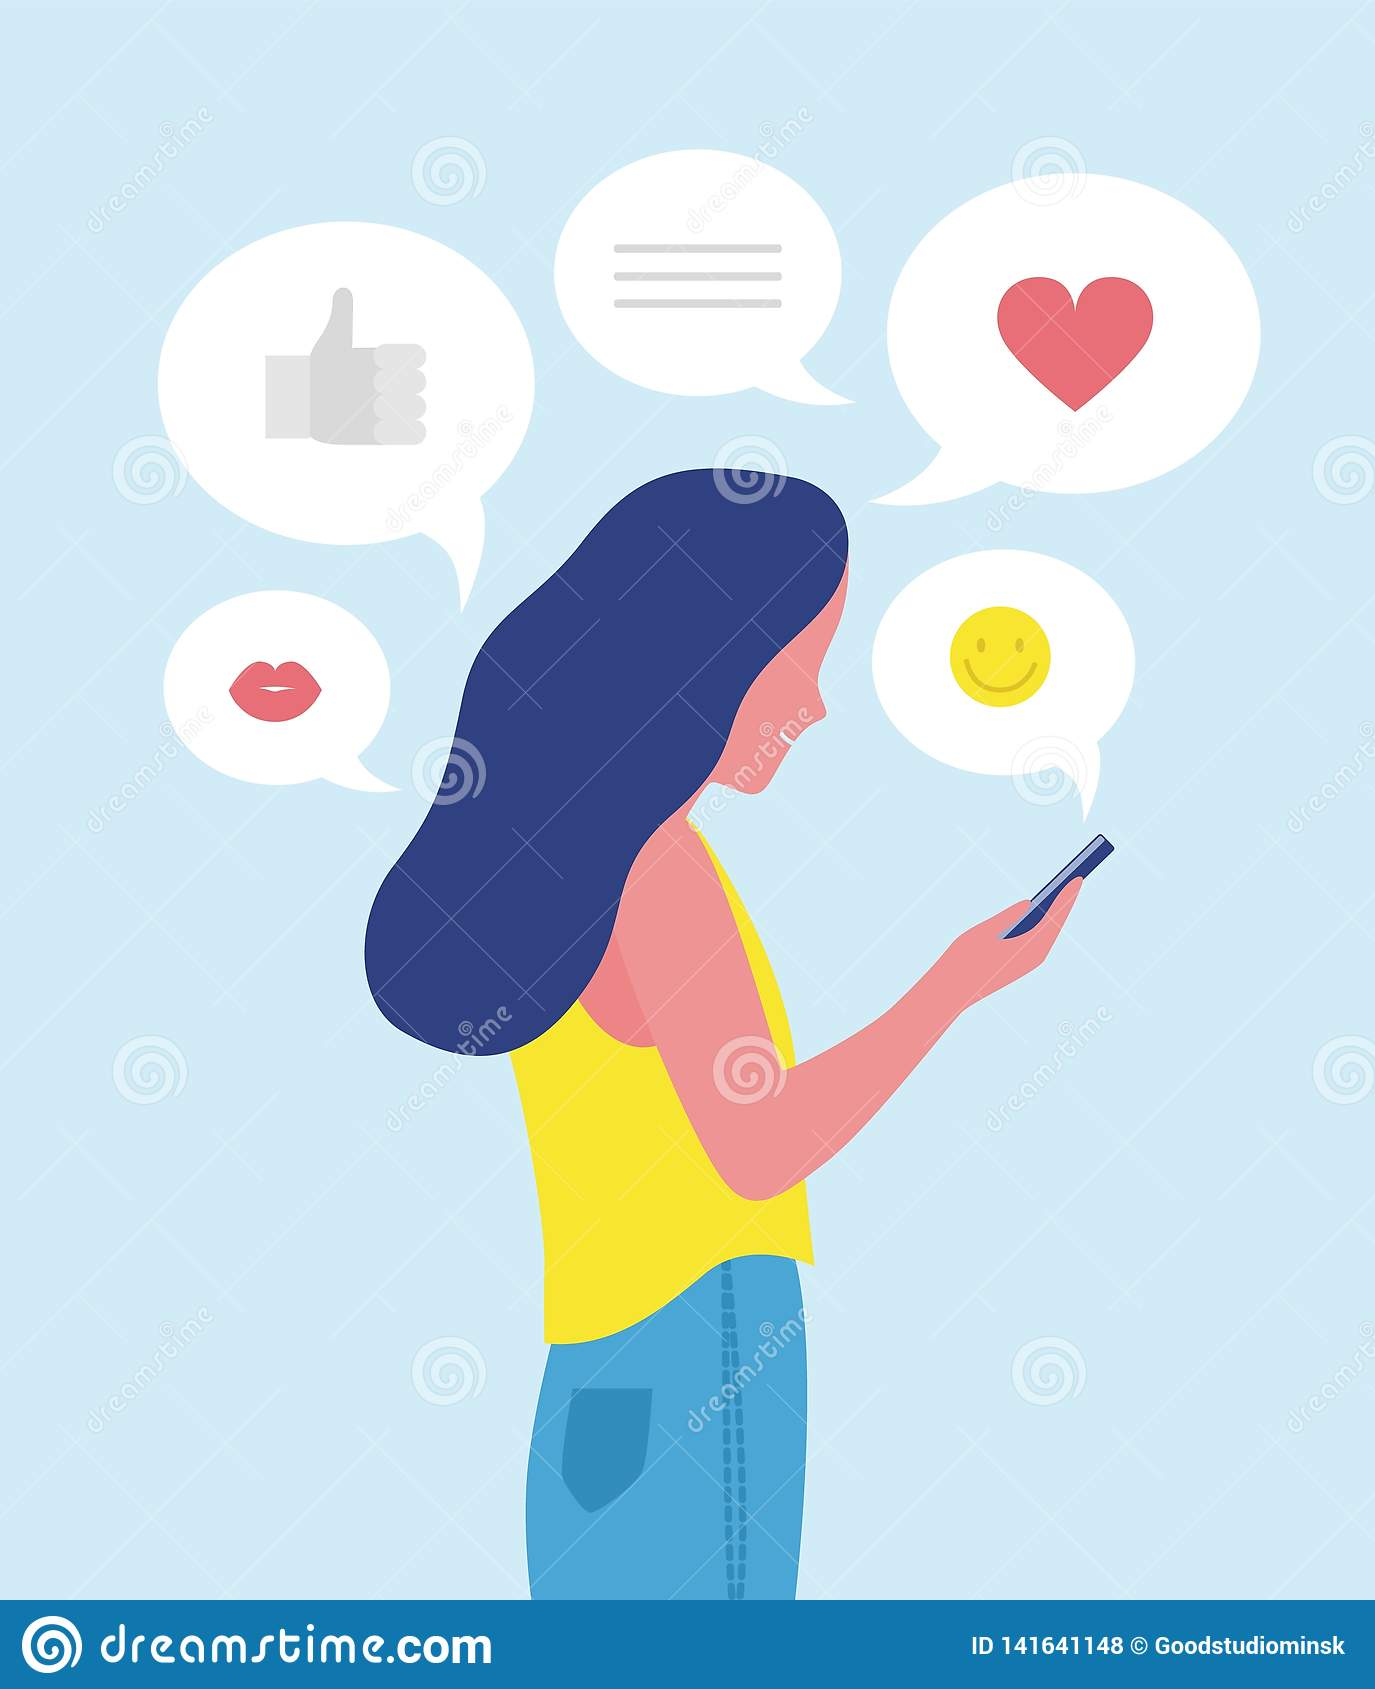 Woman or girl sending and receiving Internet messages on smartphone or texting on mobile phone. Online communication on